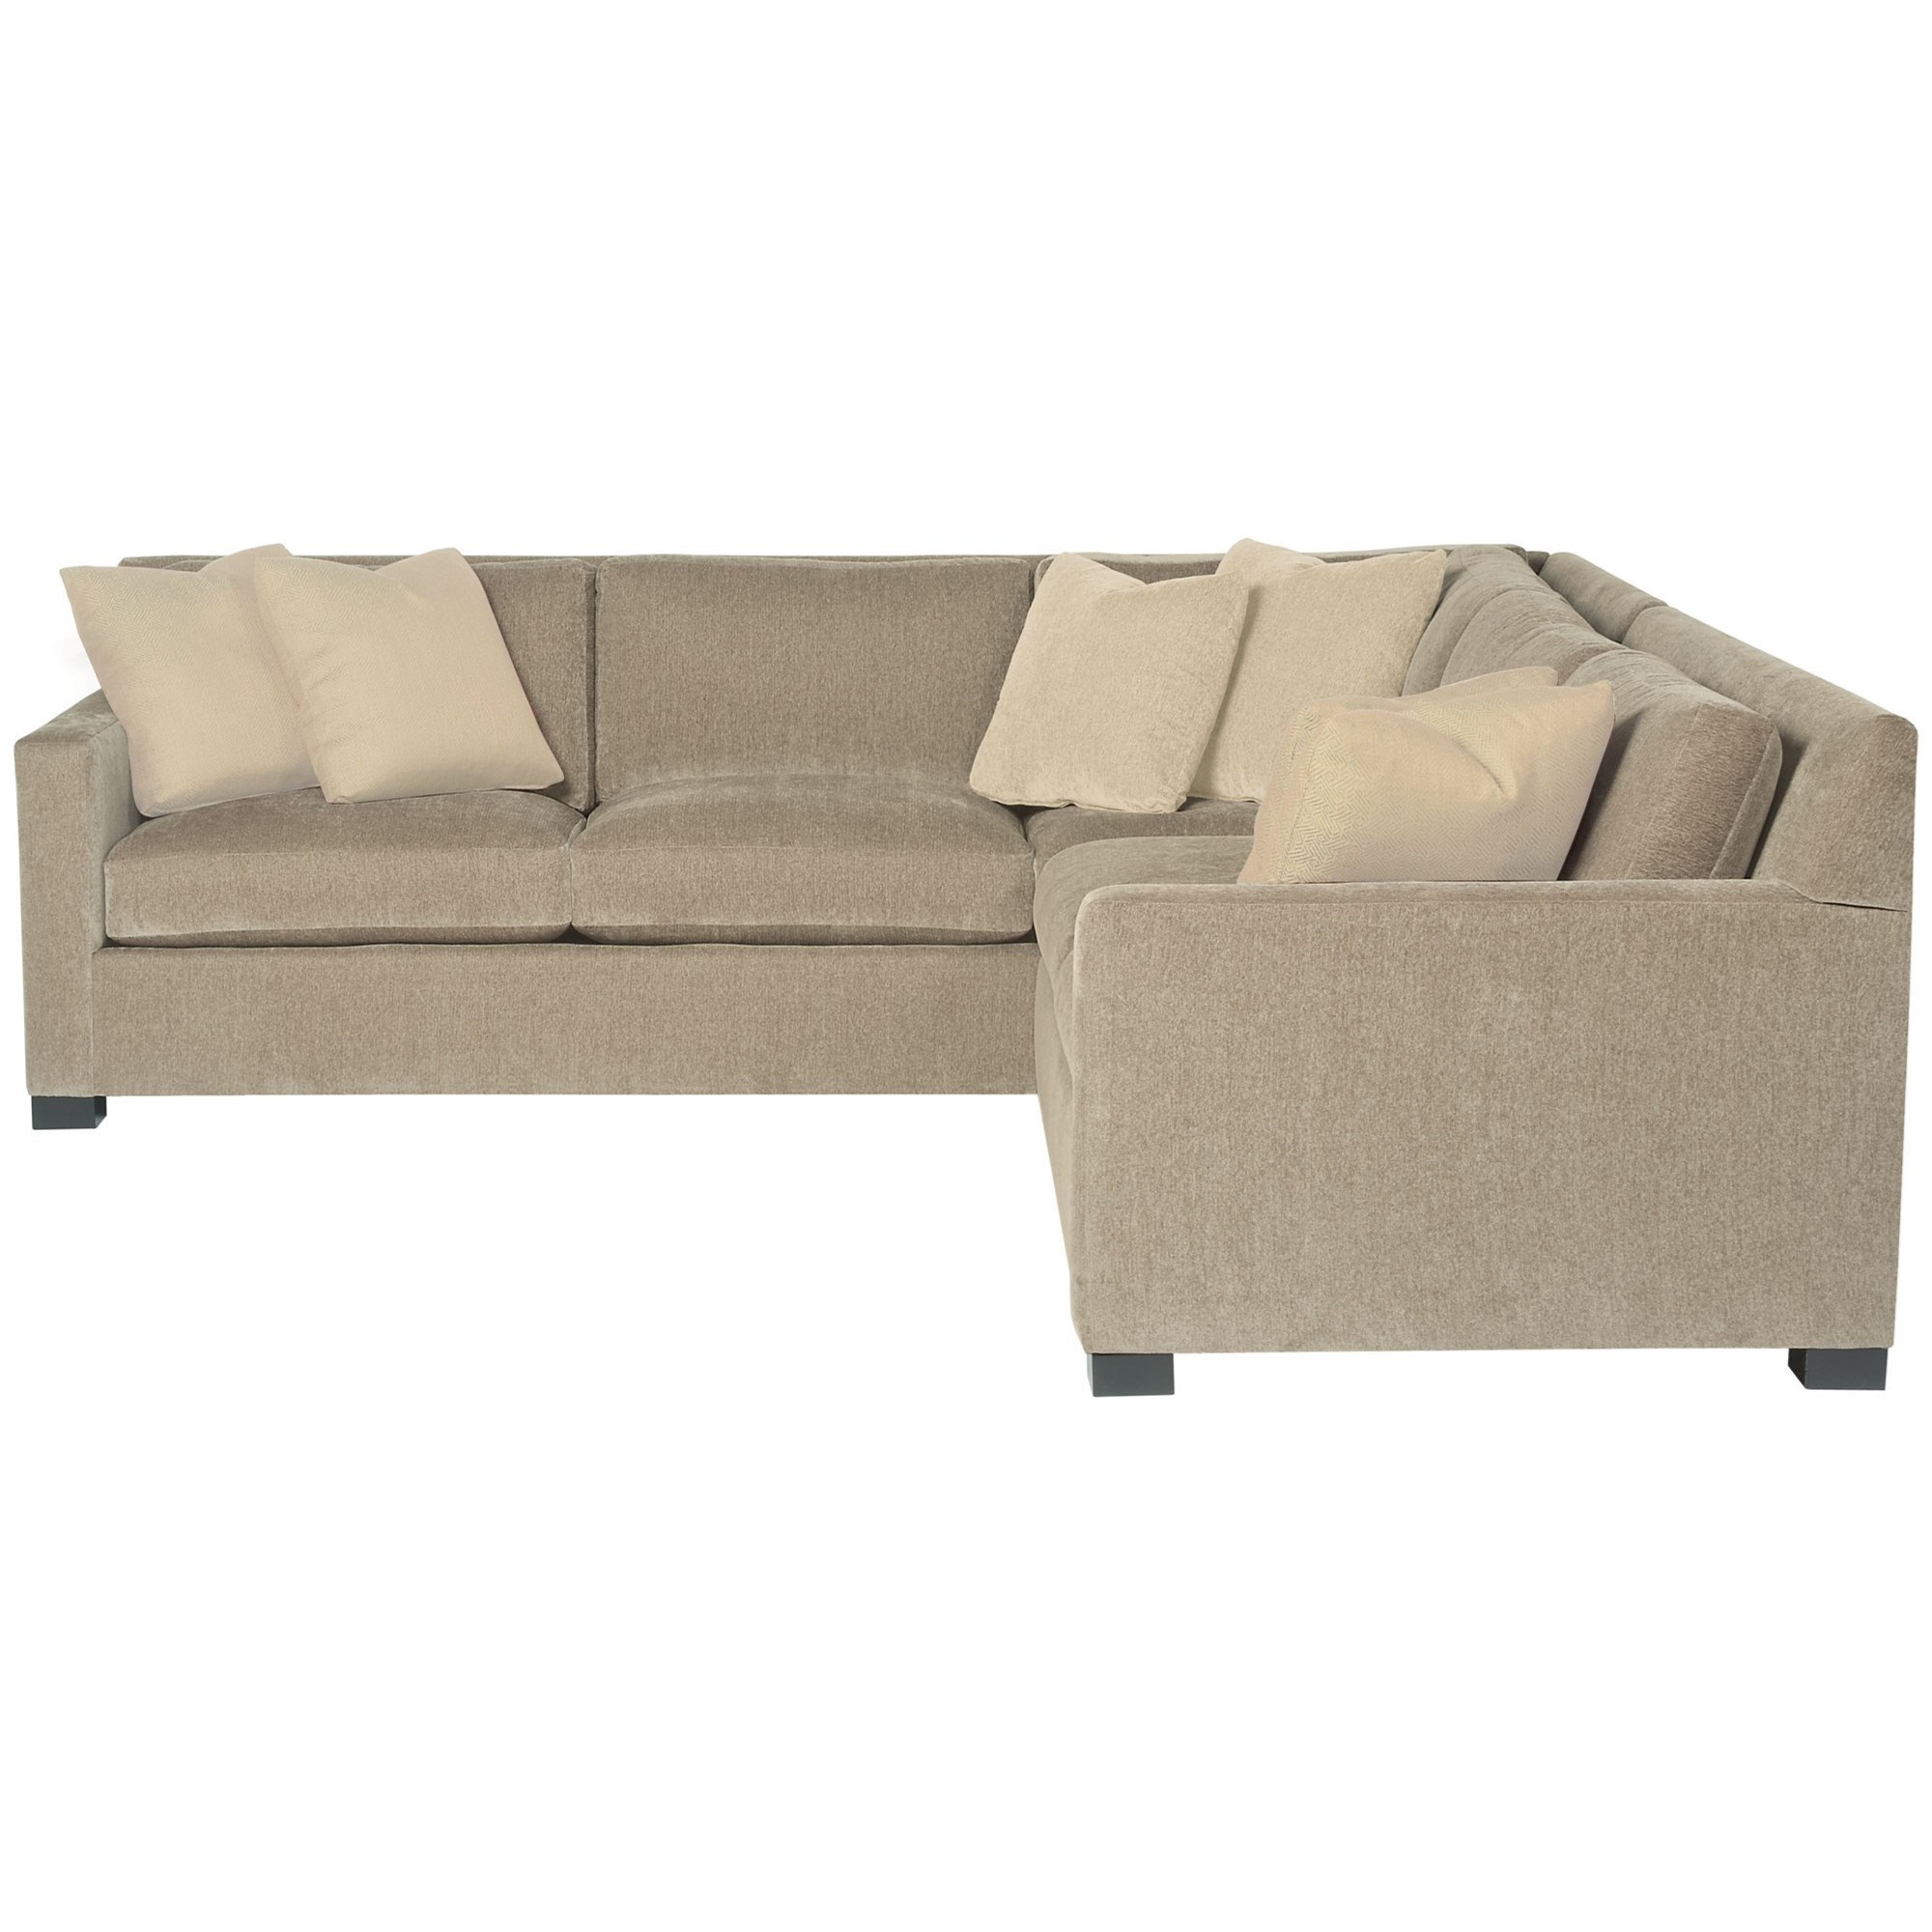 Interiors - Kelsey 2 Piece Sectional by Bernhardt at Baer's Furniture